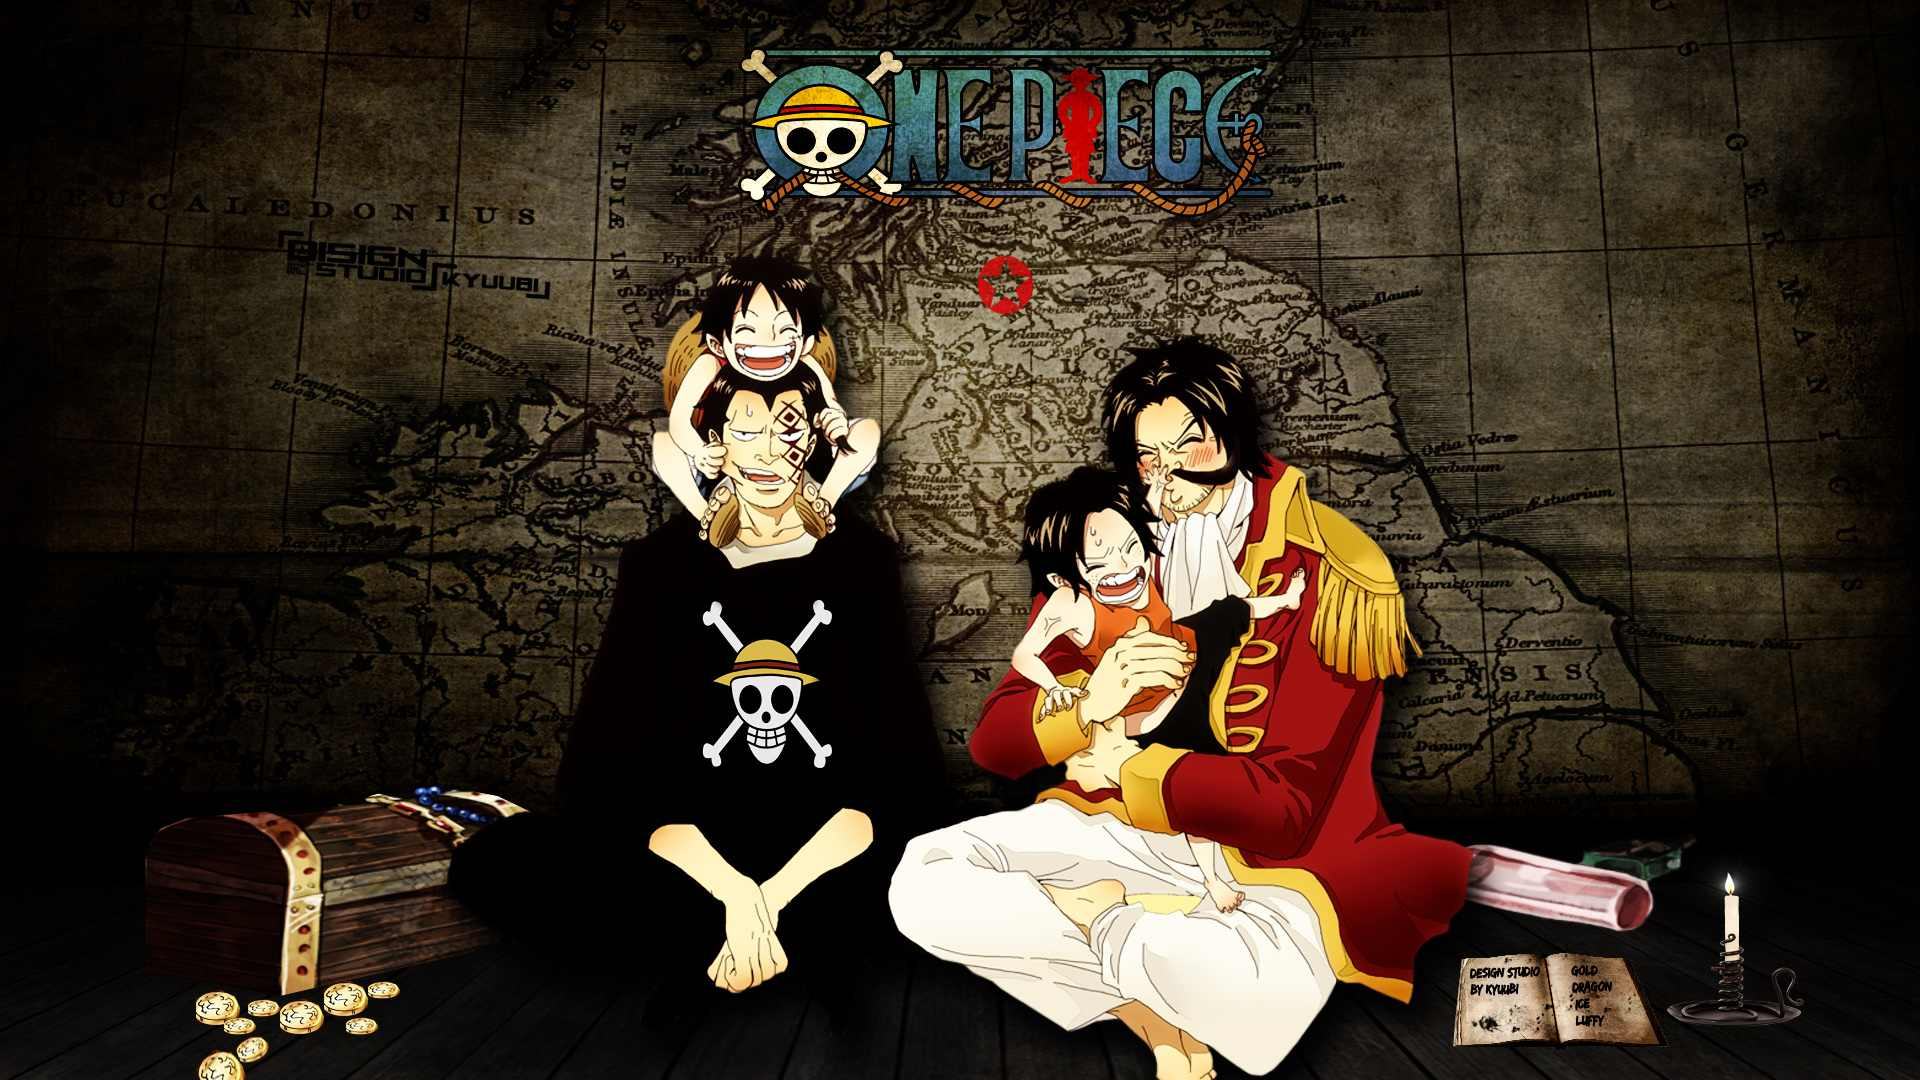 Download Wallpaper One Piece HD